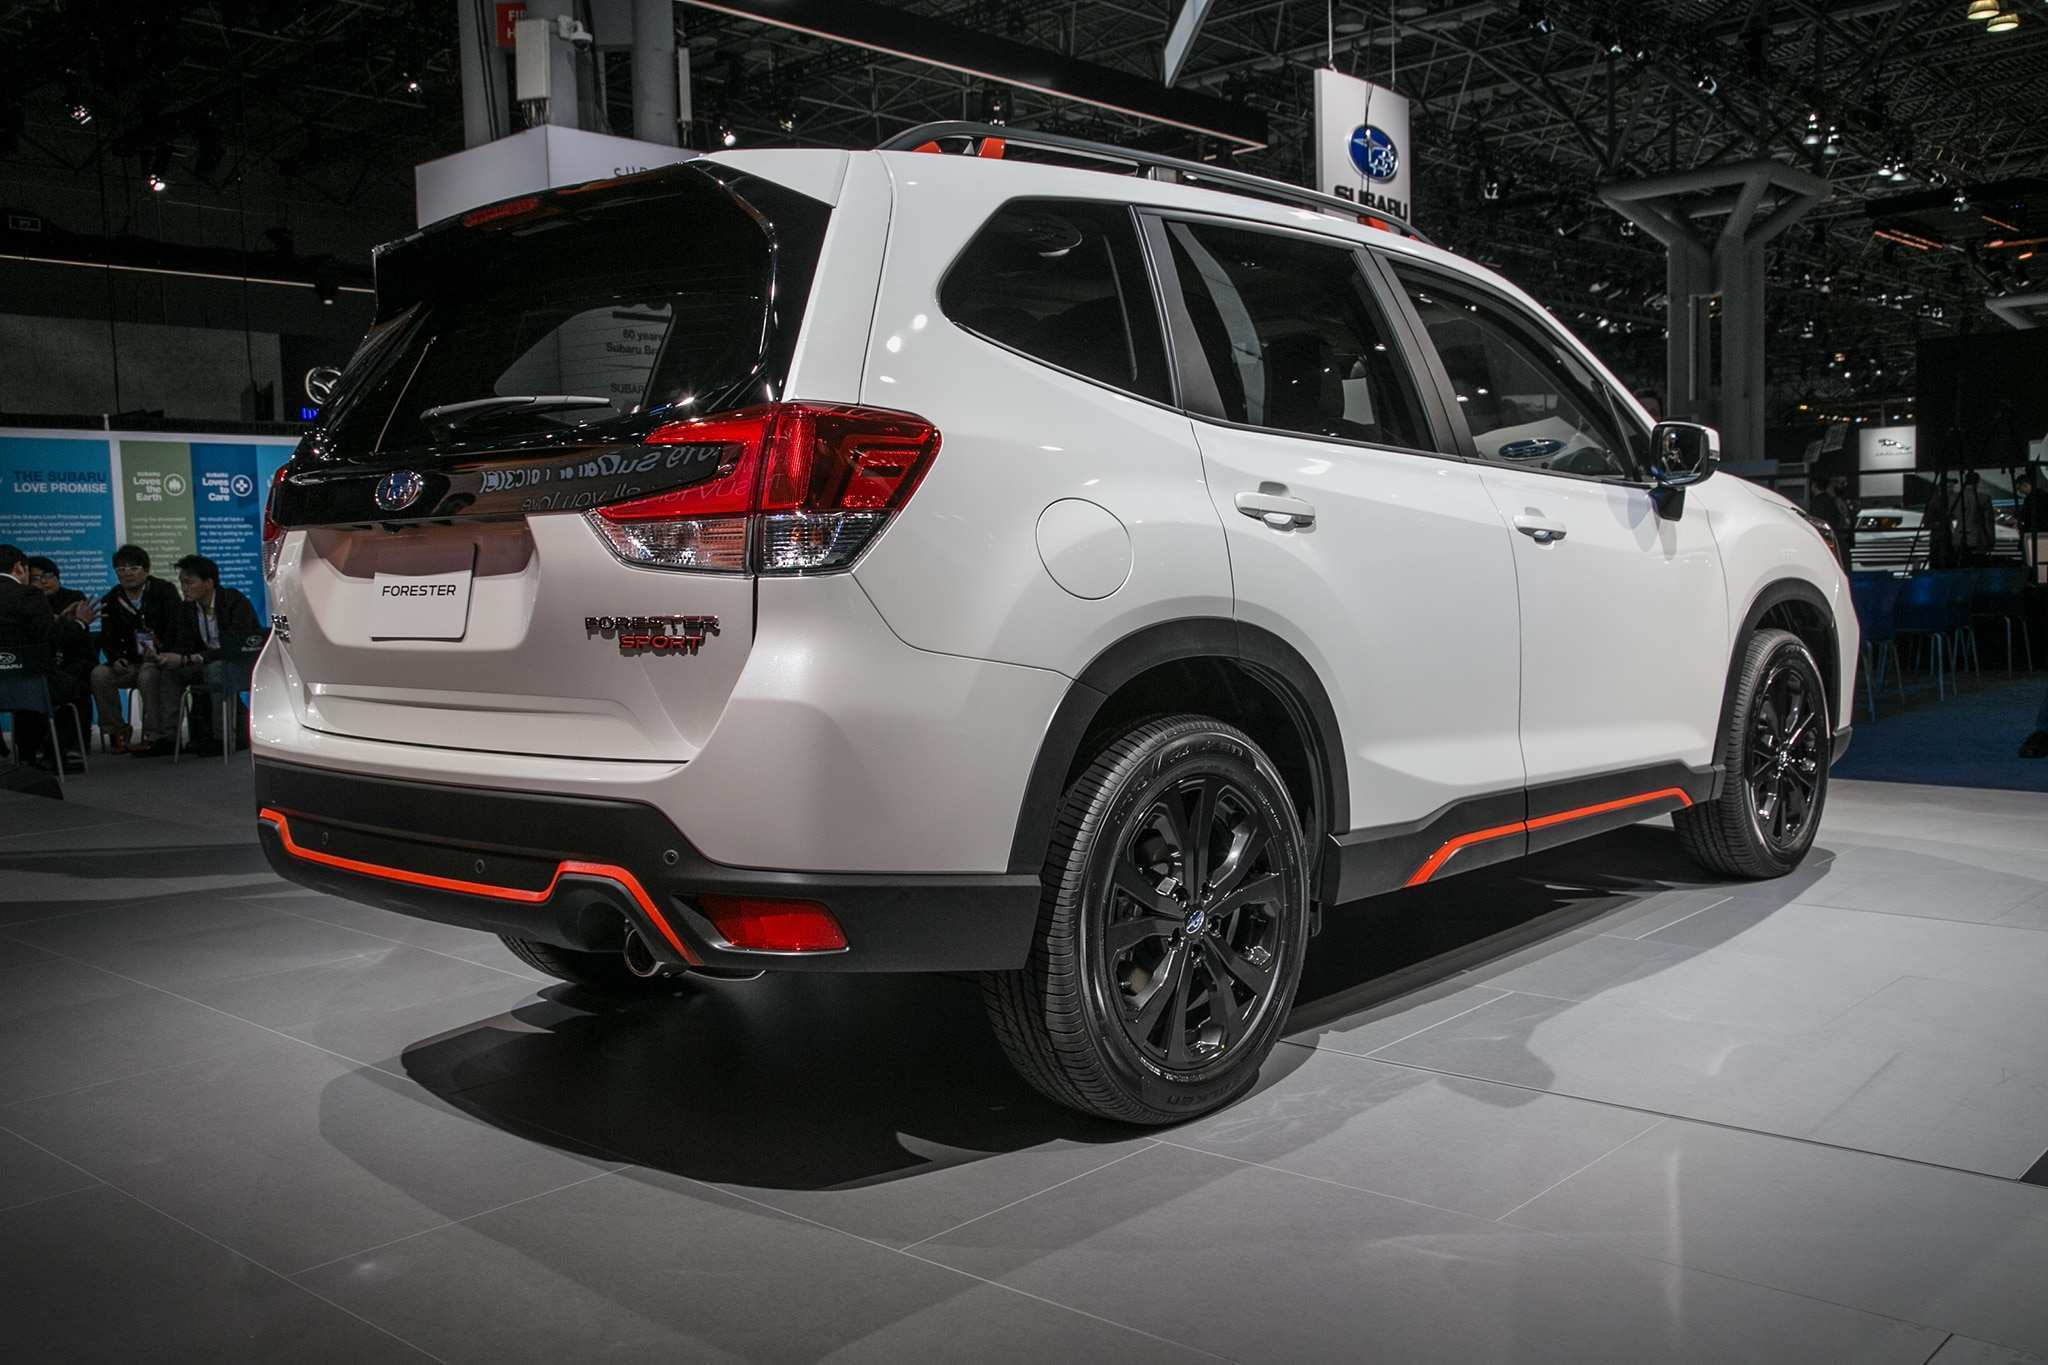 73 A Subaru Forester 2019 Ground Clearance Concept